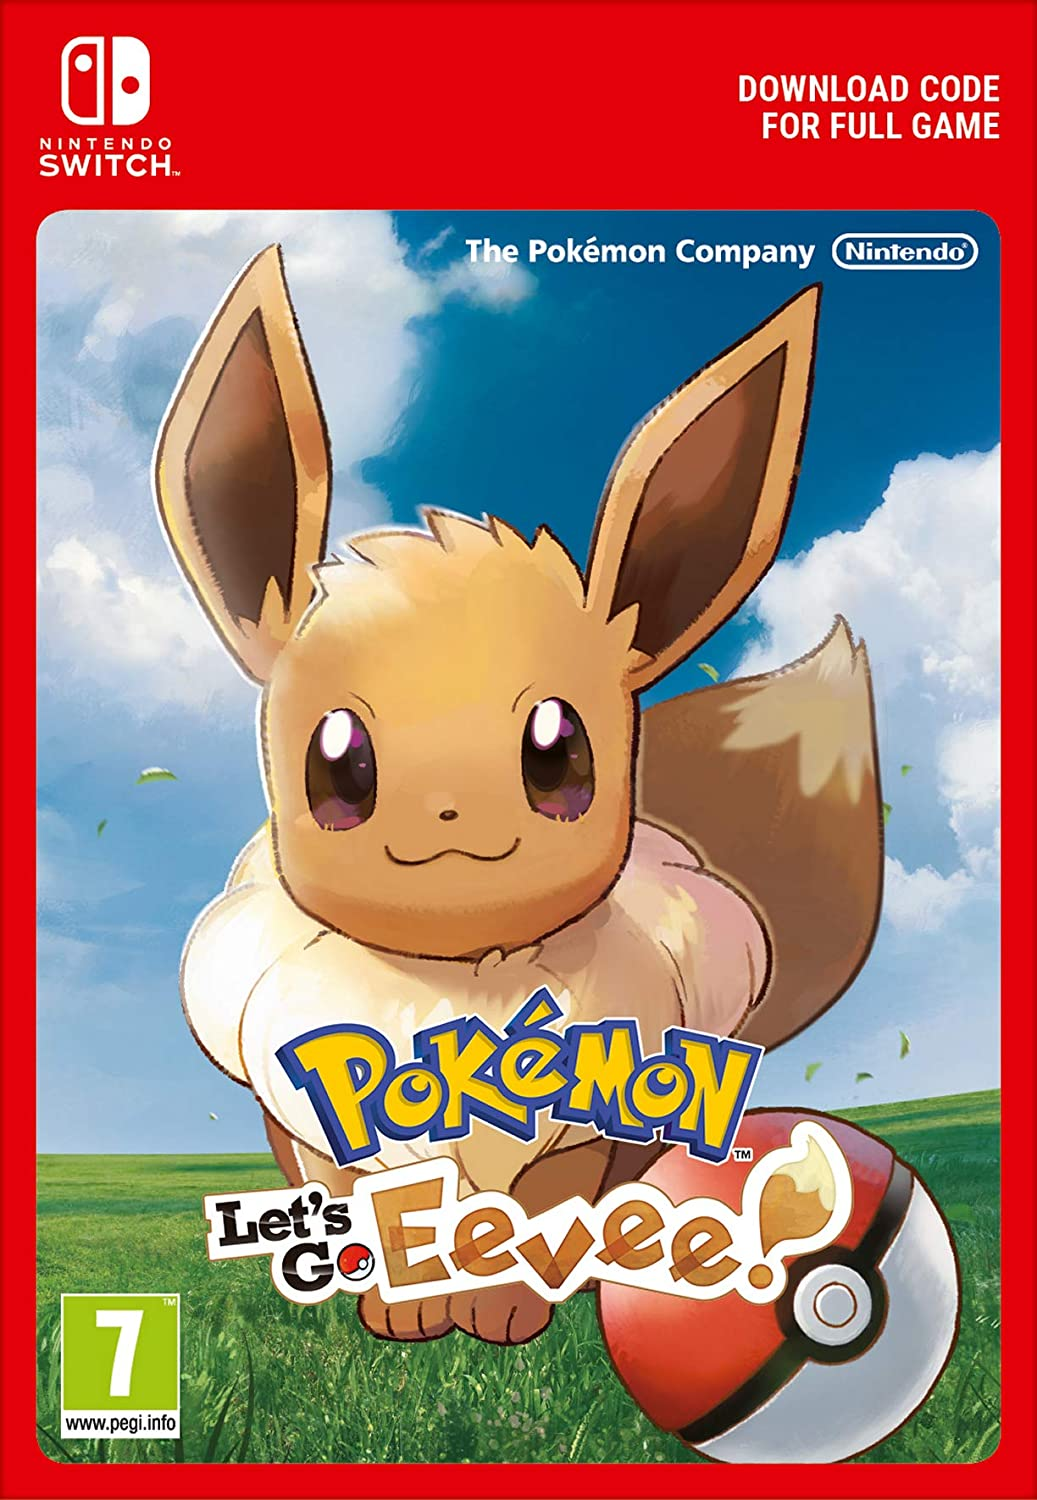 Pokémon: Let's Go, Eevee! | Switch - Download Code: Amazon